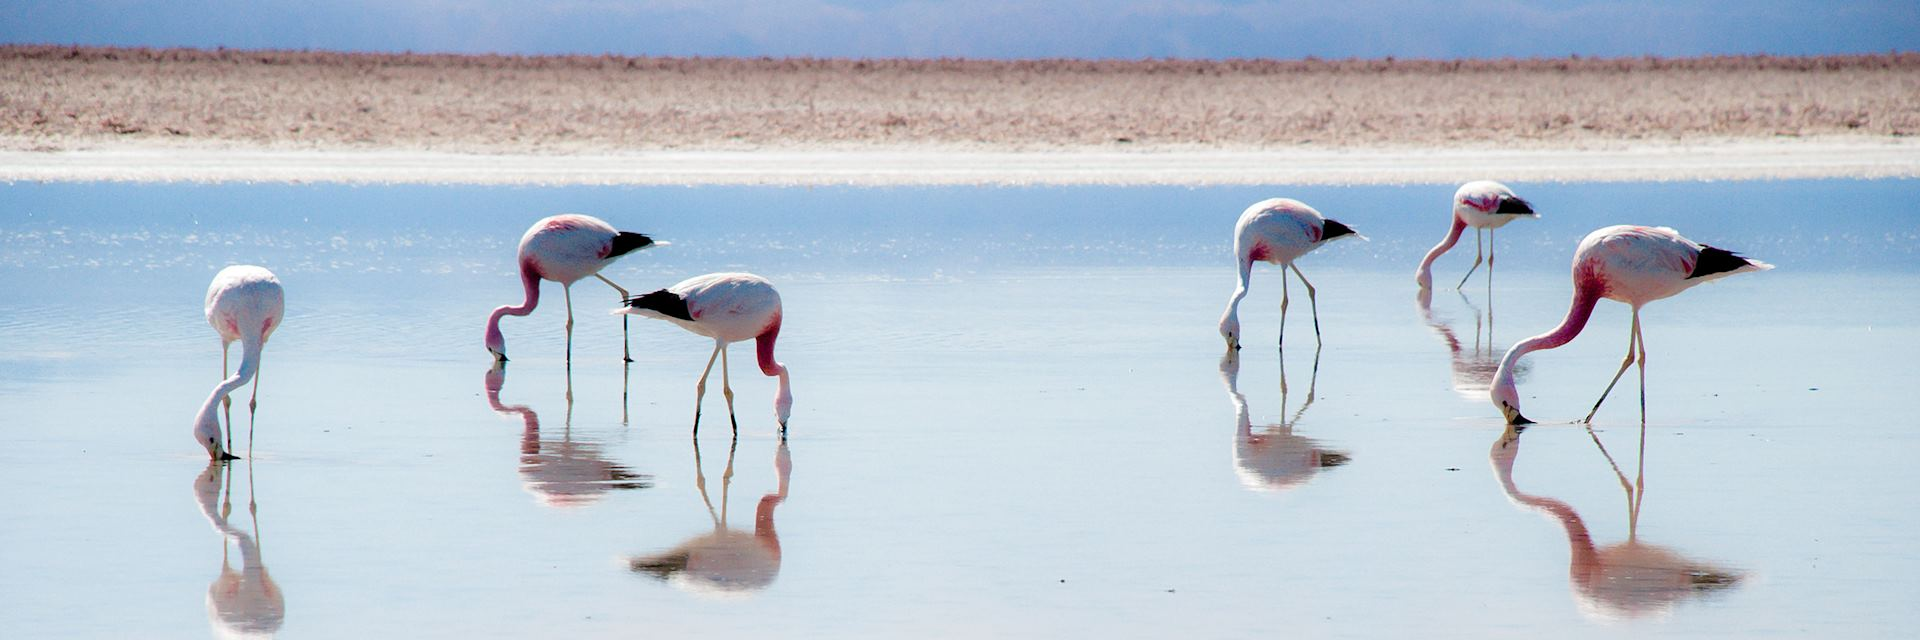 Flamingo on the Salar de Atacama slat flat